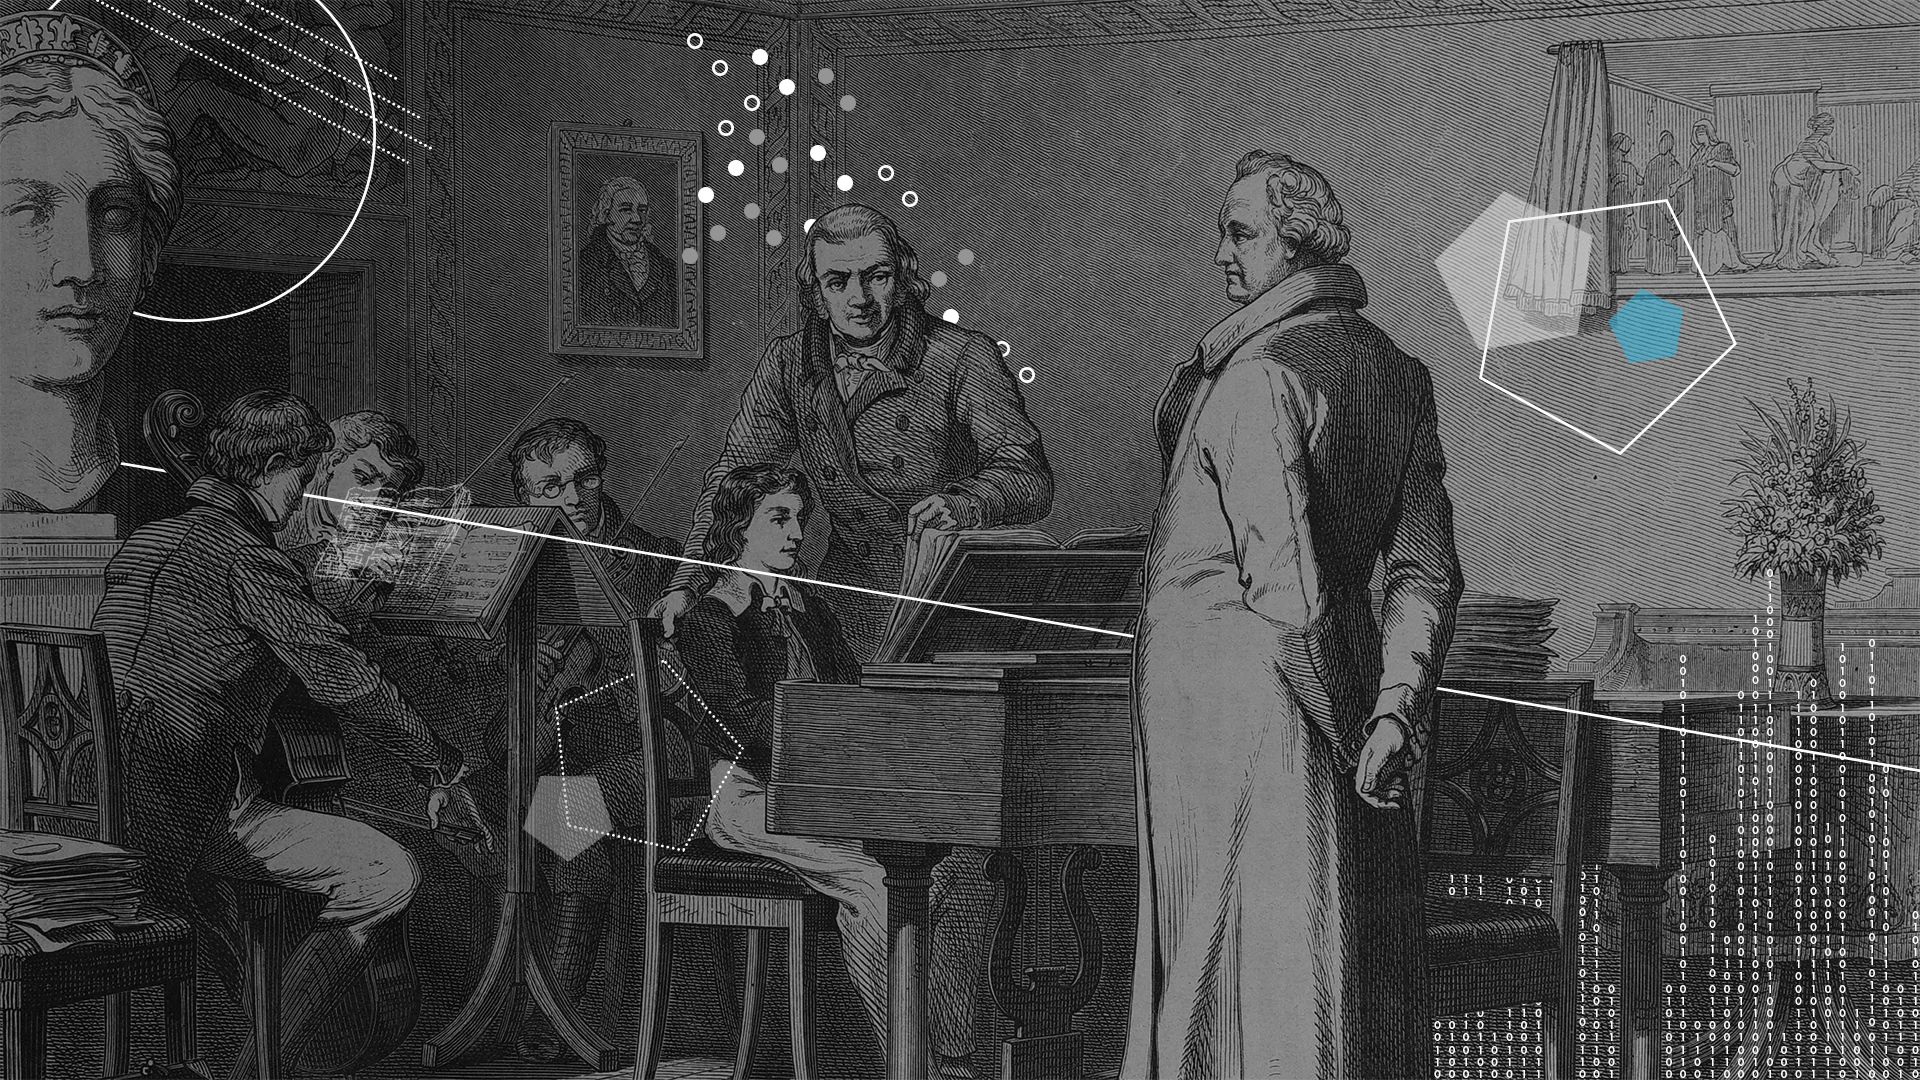 19th century depiction of young Felix Mendelssohn Bartholdy playing piano for Johann Wolfgang von Goethe